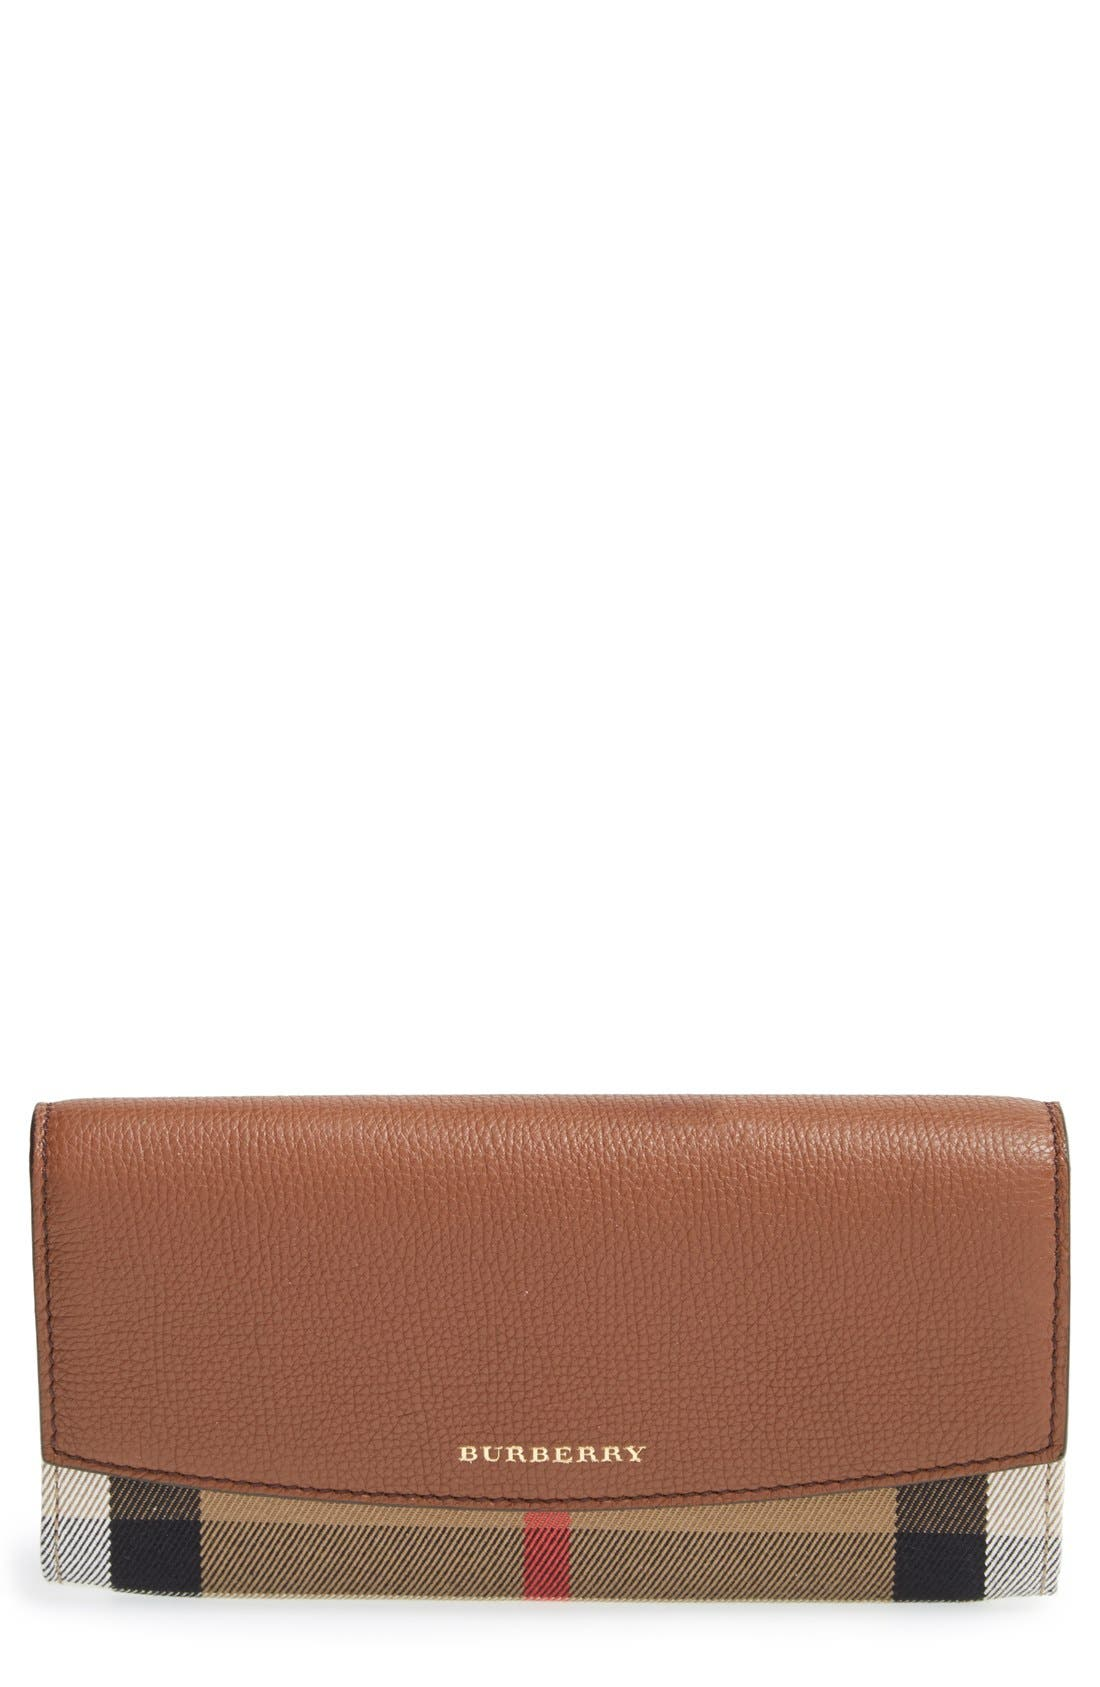 'Porter' Continental Wallet,                         Main,                         color, Tan Gld Hrdwre